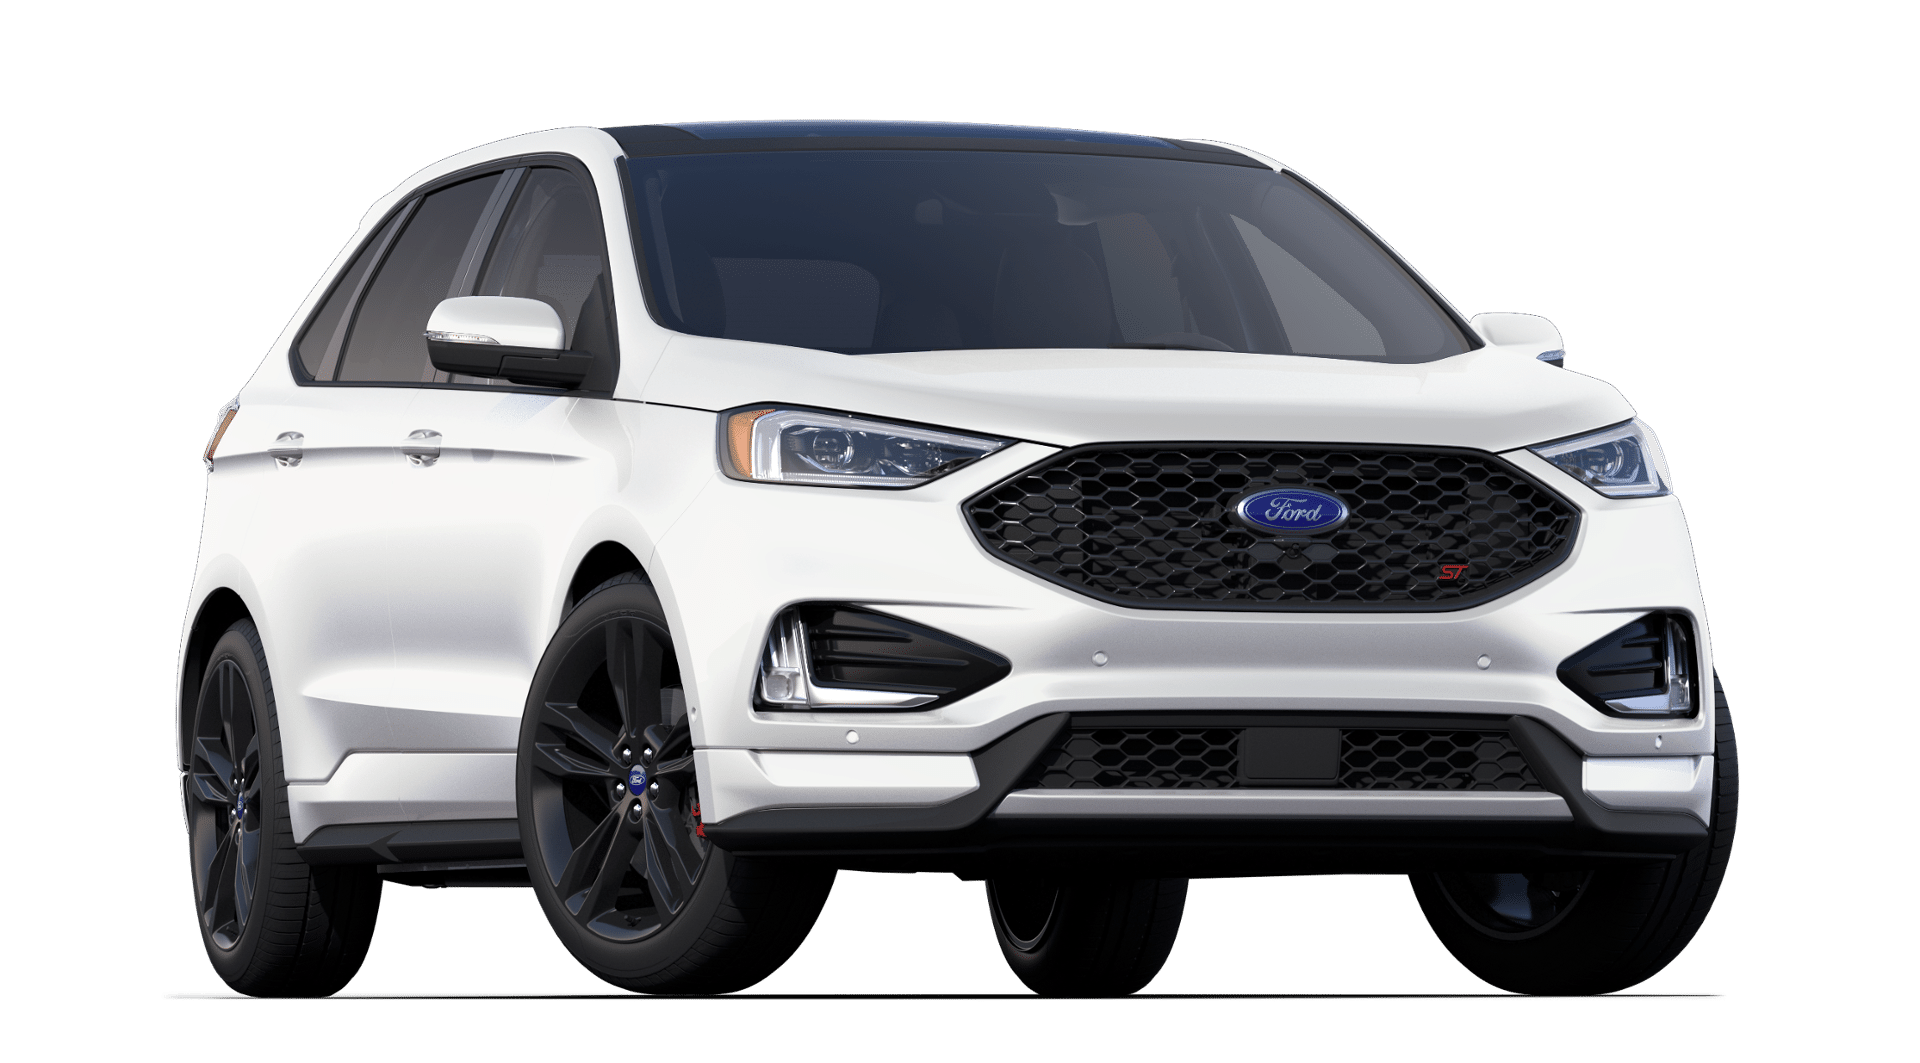 2019 Ford Edge ST Price Starts at $43,450 and Tops Out Over $55,000 - The News Wheel